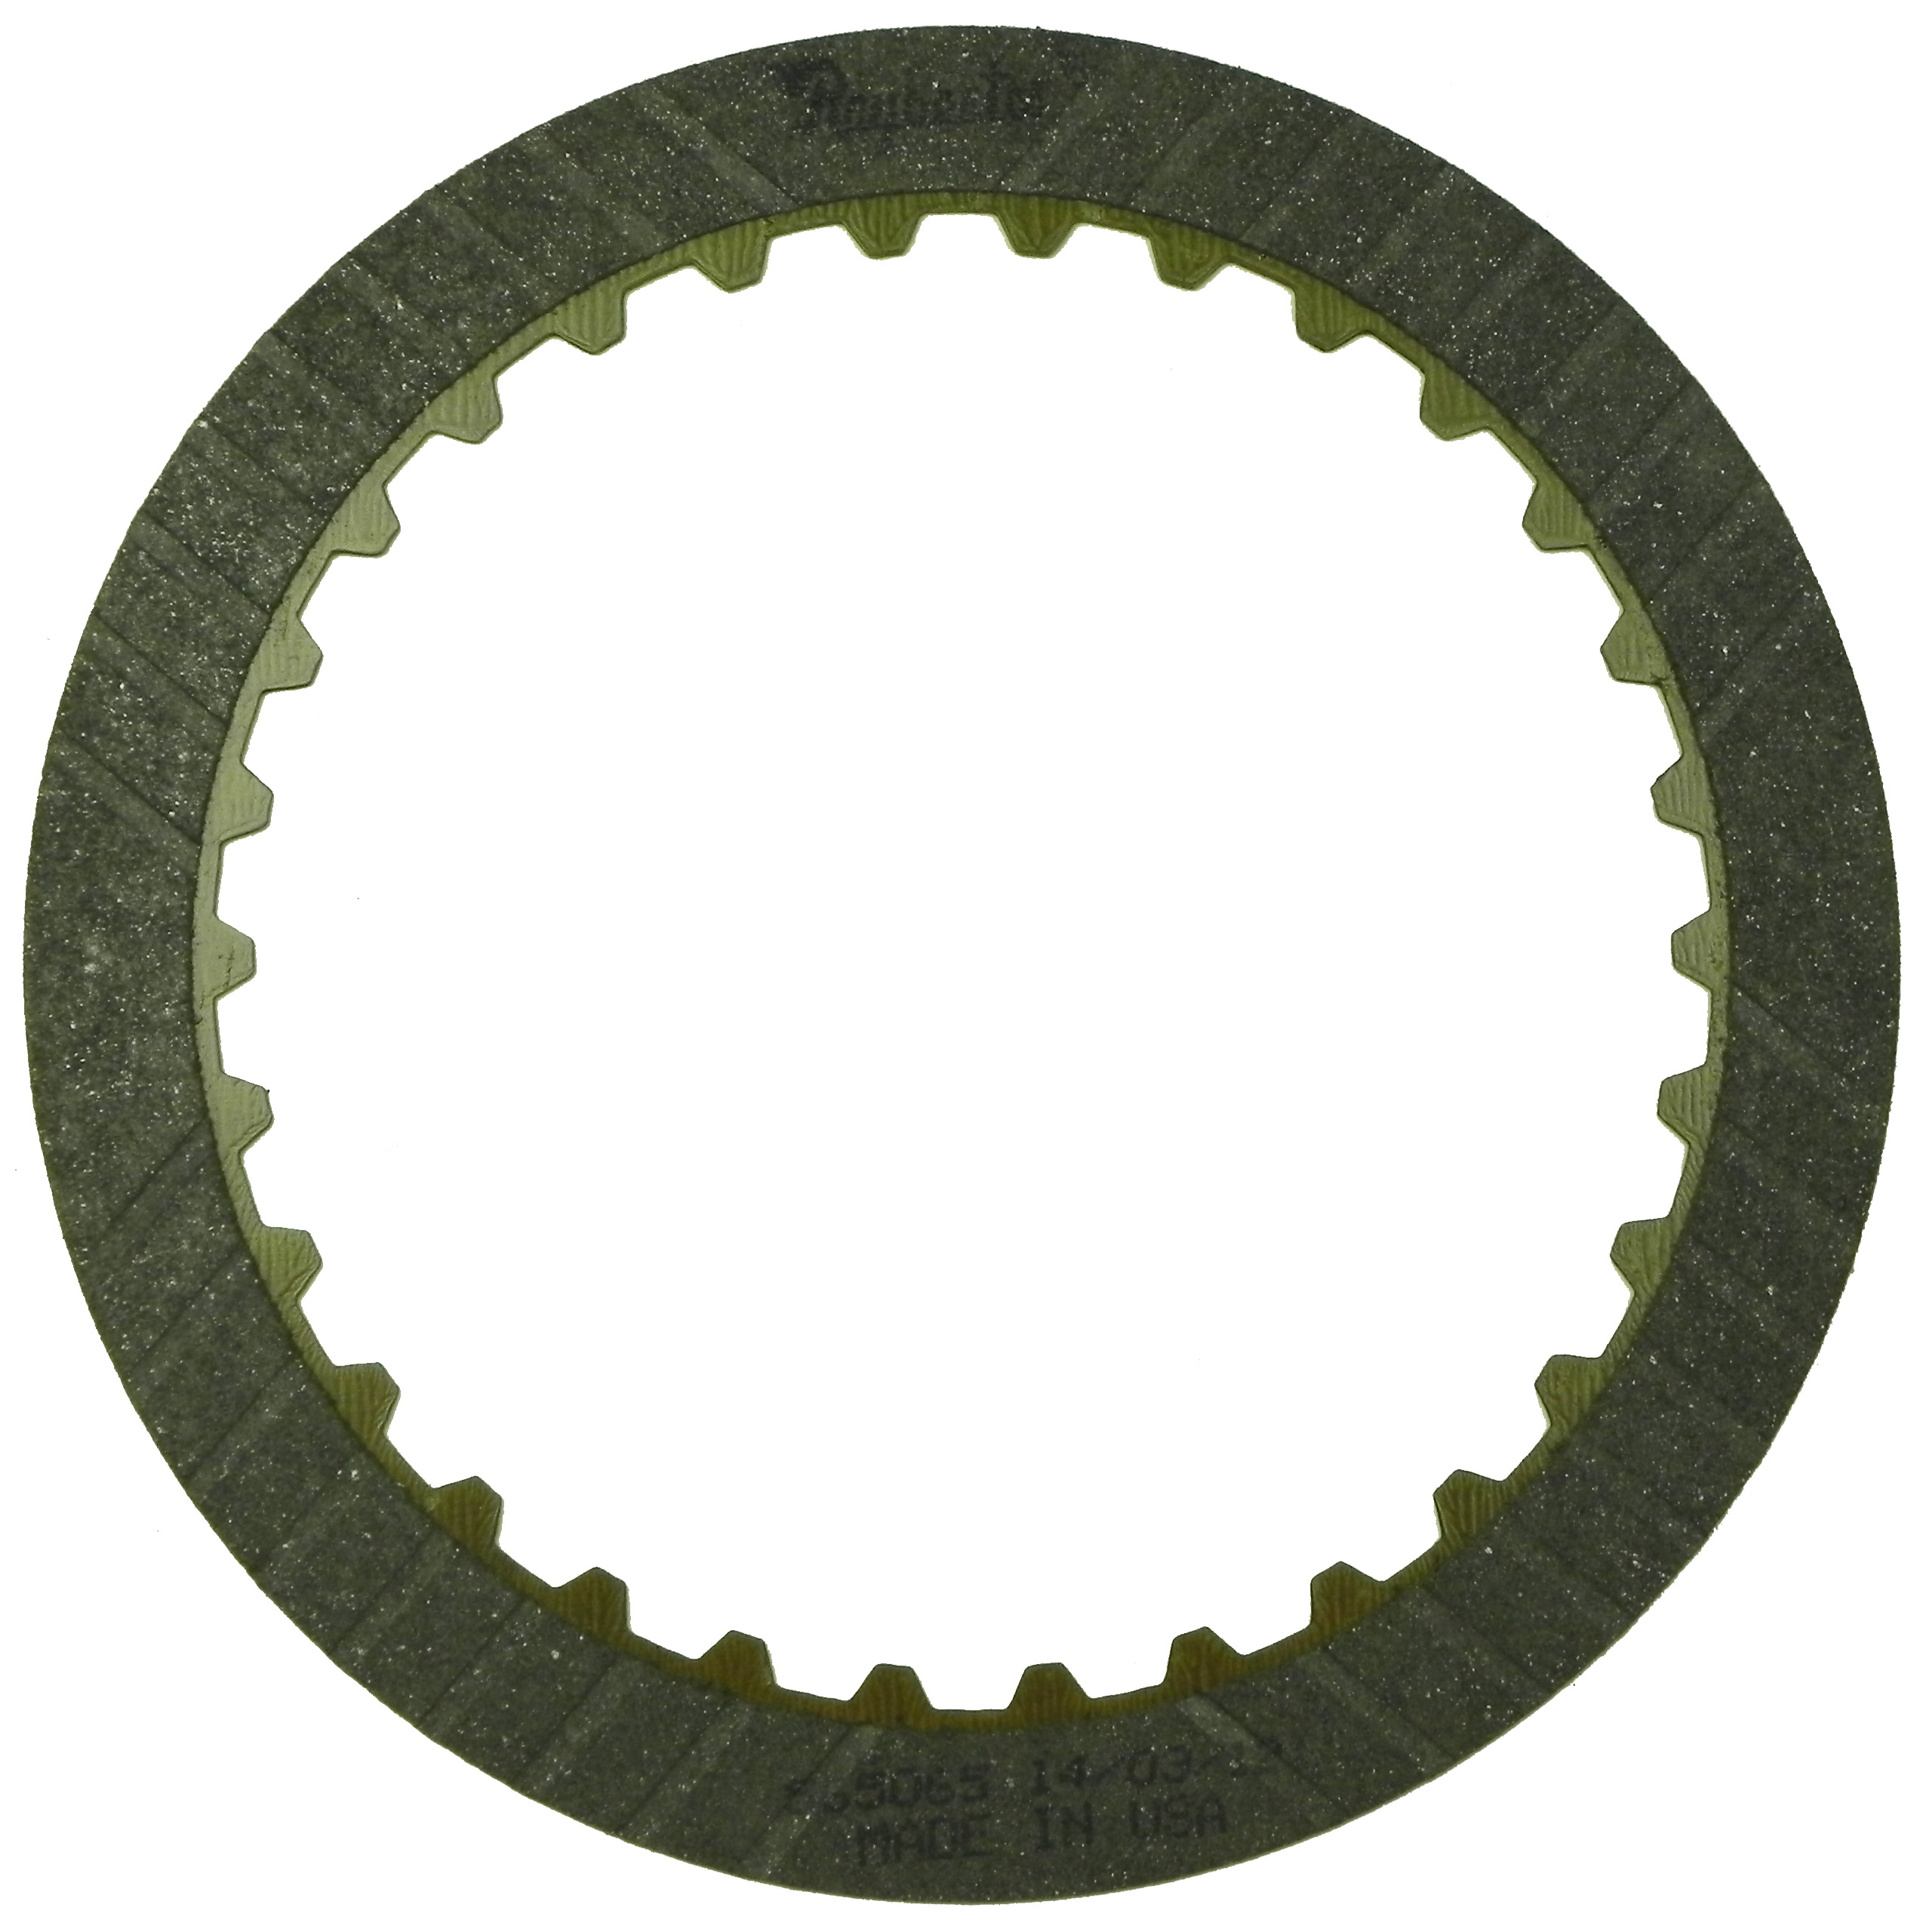 R565065 | 2006-2008 Friction Clutch Plate High Energy Overdrive Clutch High Energy